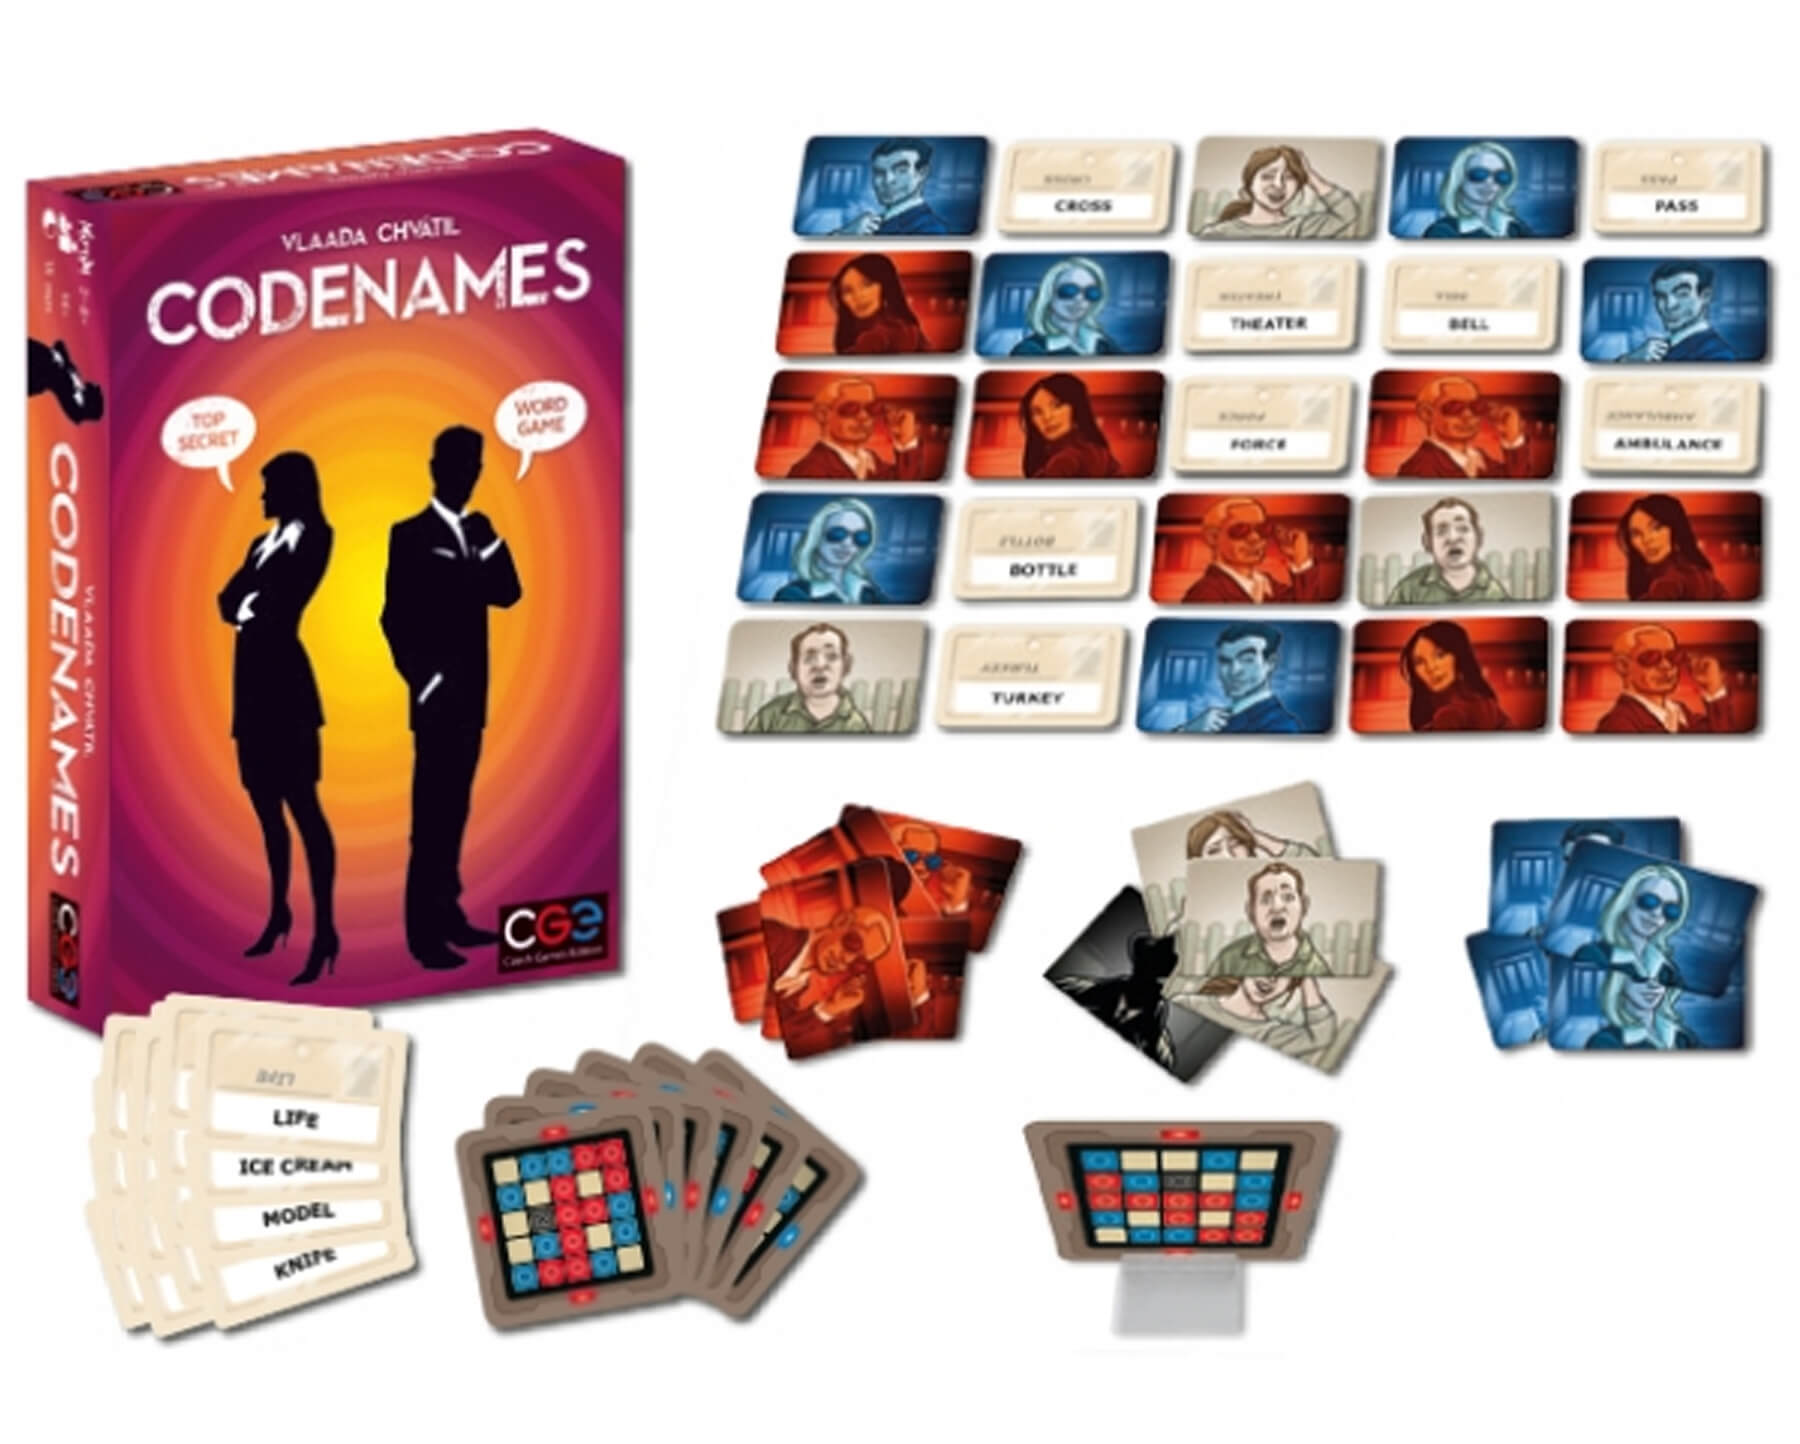 The art and game pieces for the tabletop game Codenames.